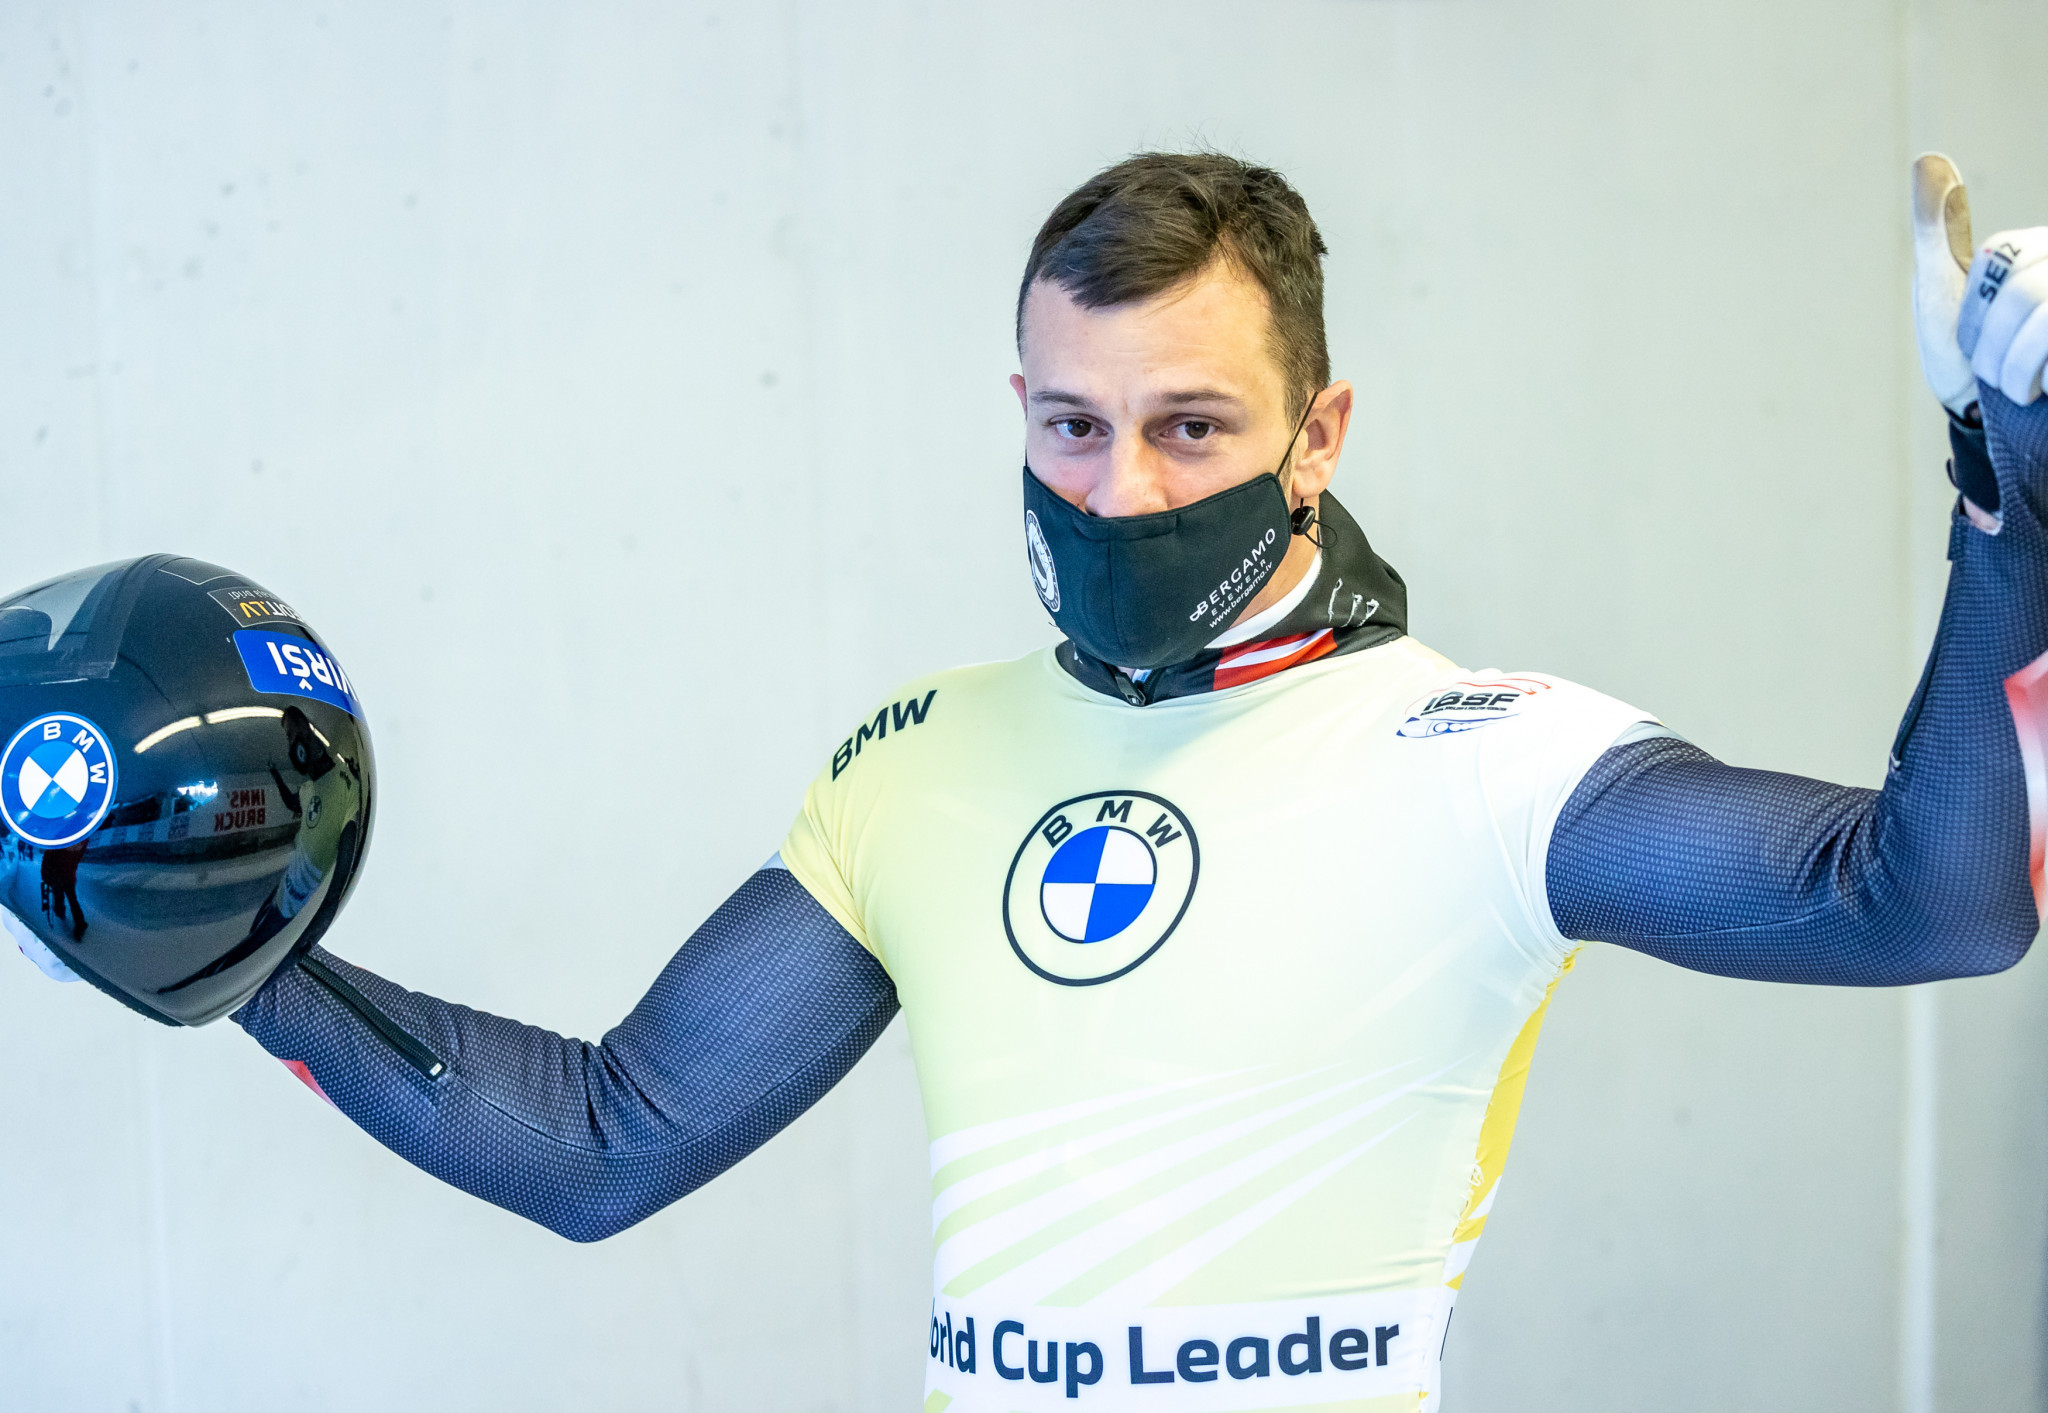 Martins Dukurs leads the men's skeleton World Cup standings ©Getty Images